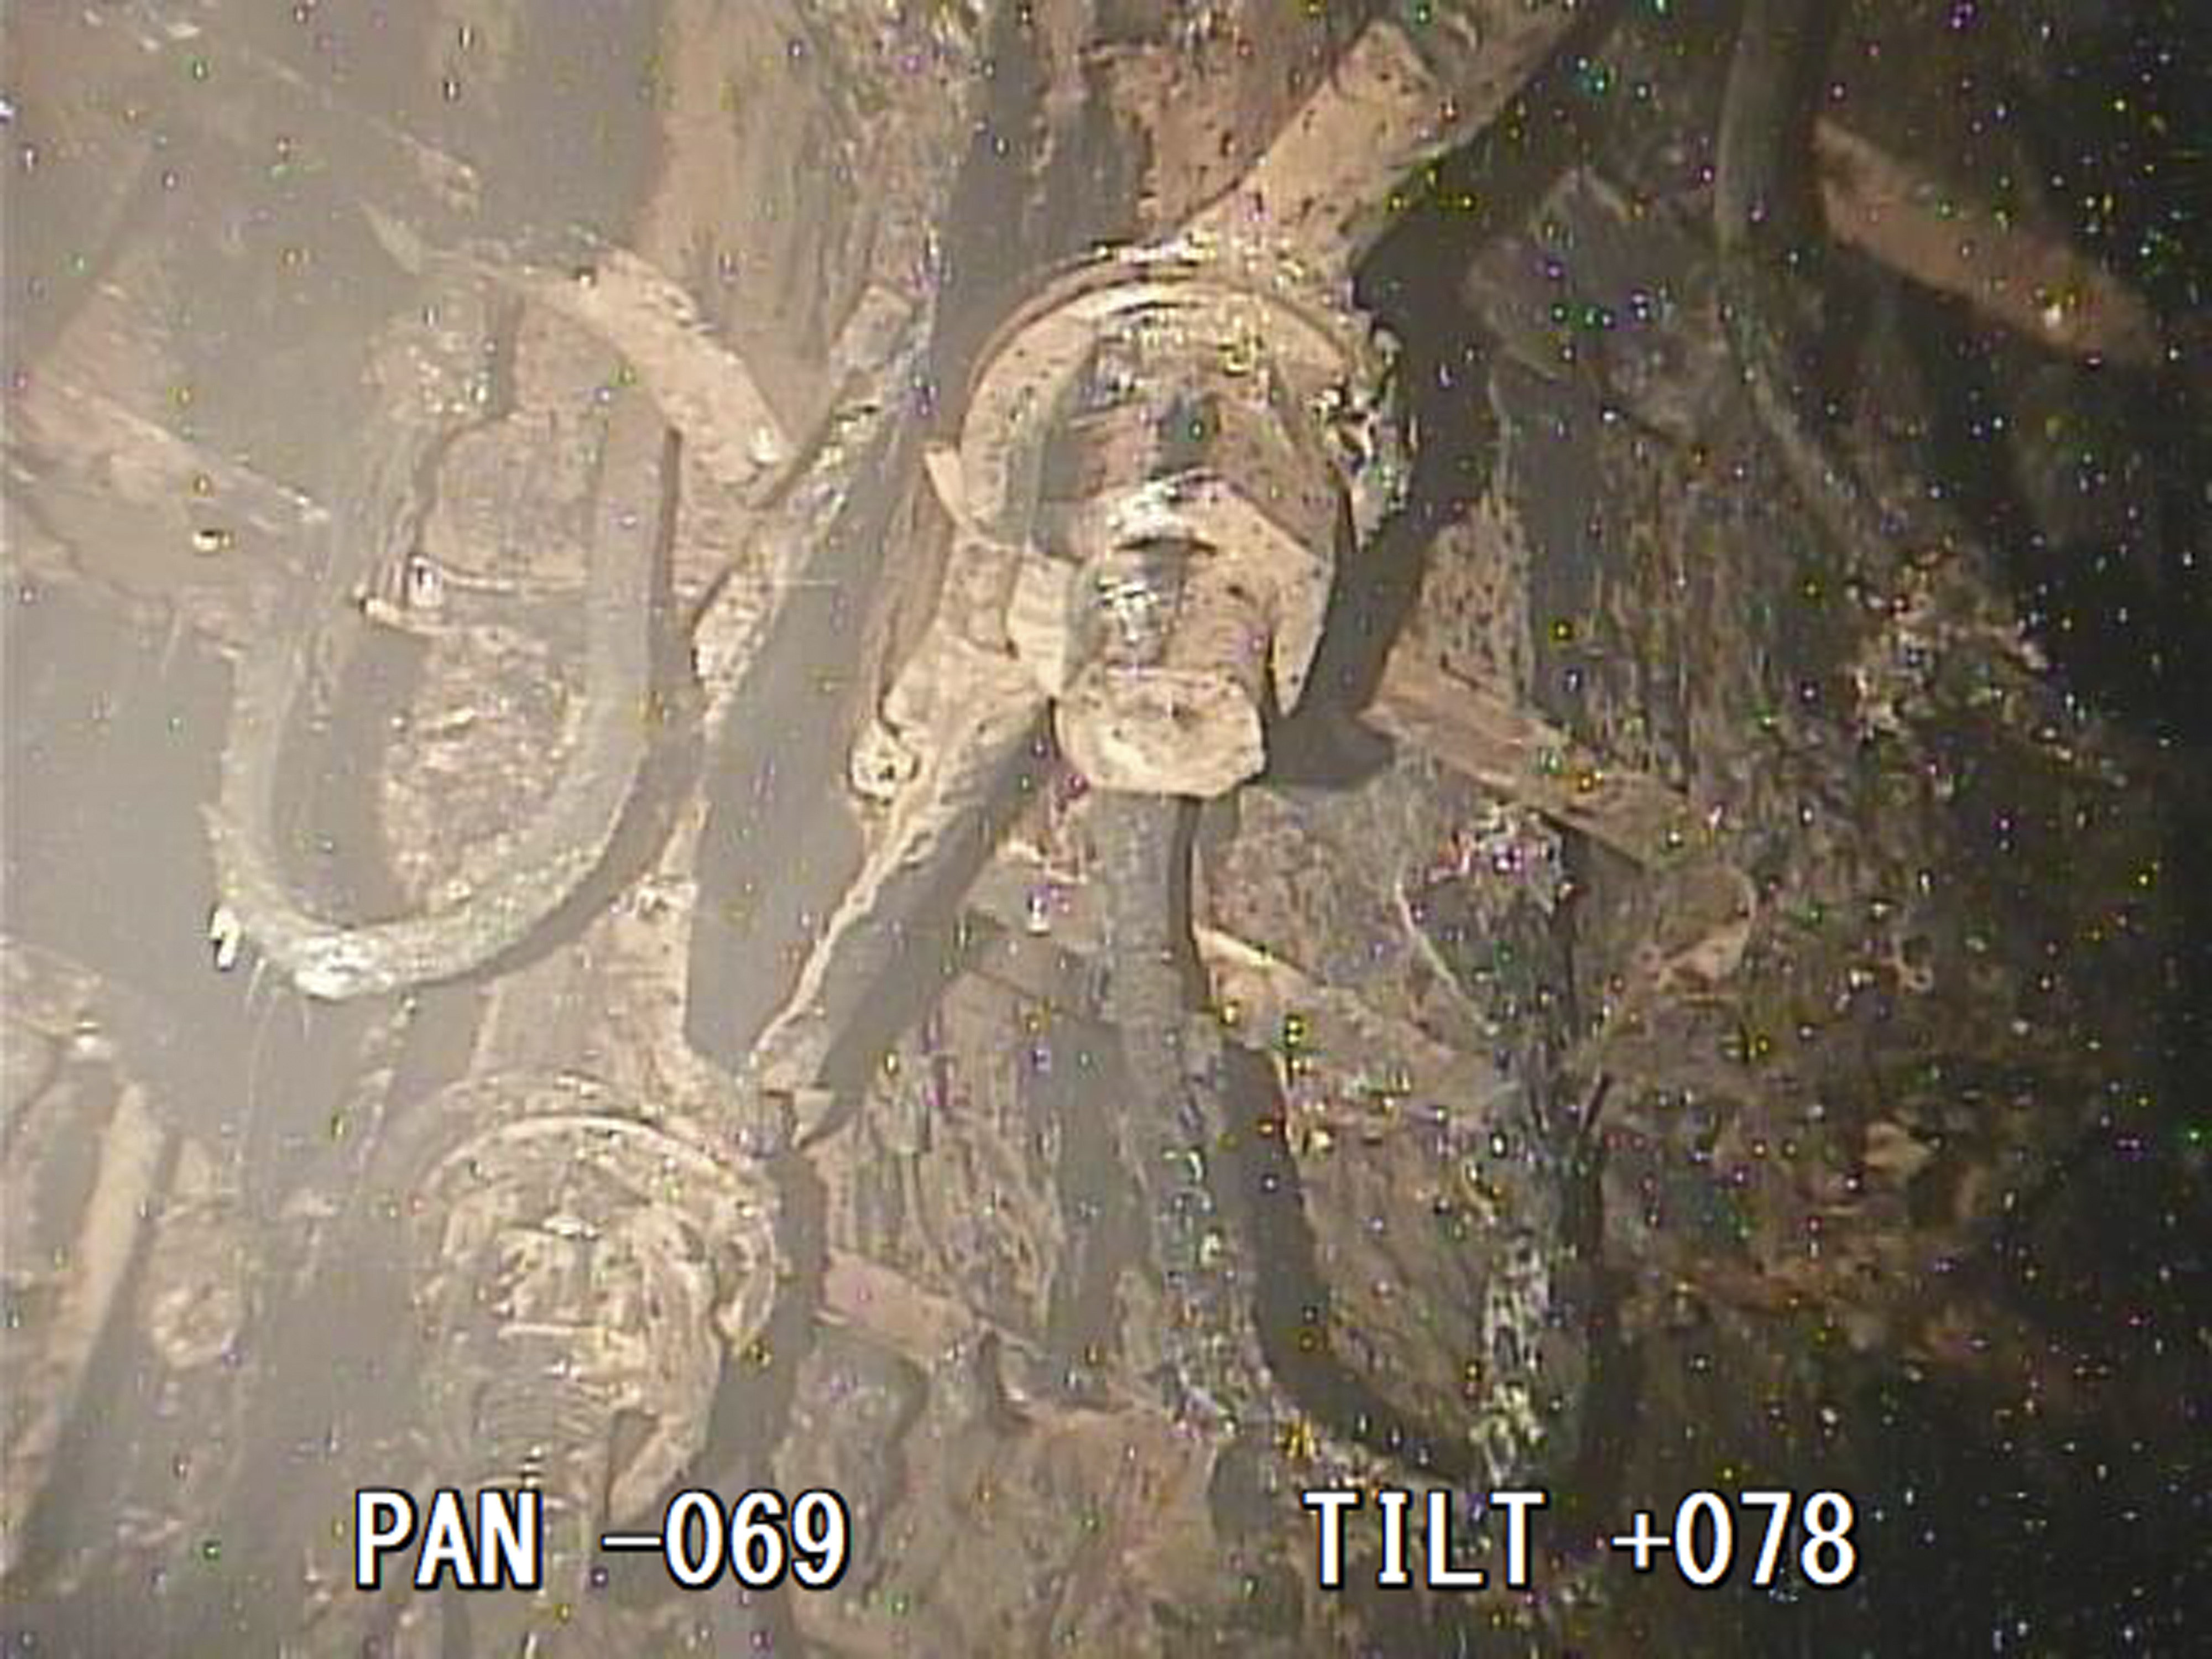 A photo taken by a robotic probe provided by the International Research Institute for Nuclear Decommissioning, Friday, Jan. 19, 2018, shows a view of the bottom of a structure housing a safety system called the control rod drive, which appeared rusty and coated with unidentified material at the Fukushima nuclear plant